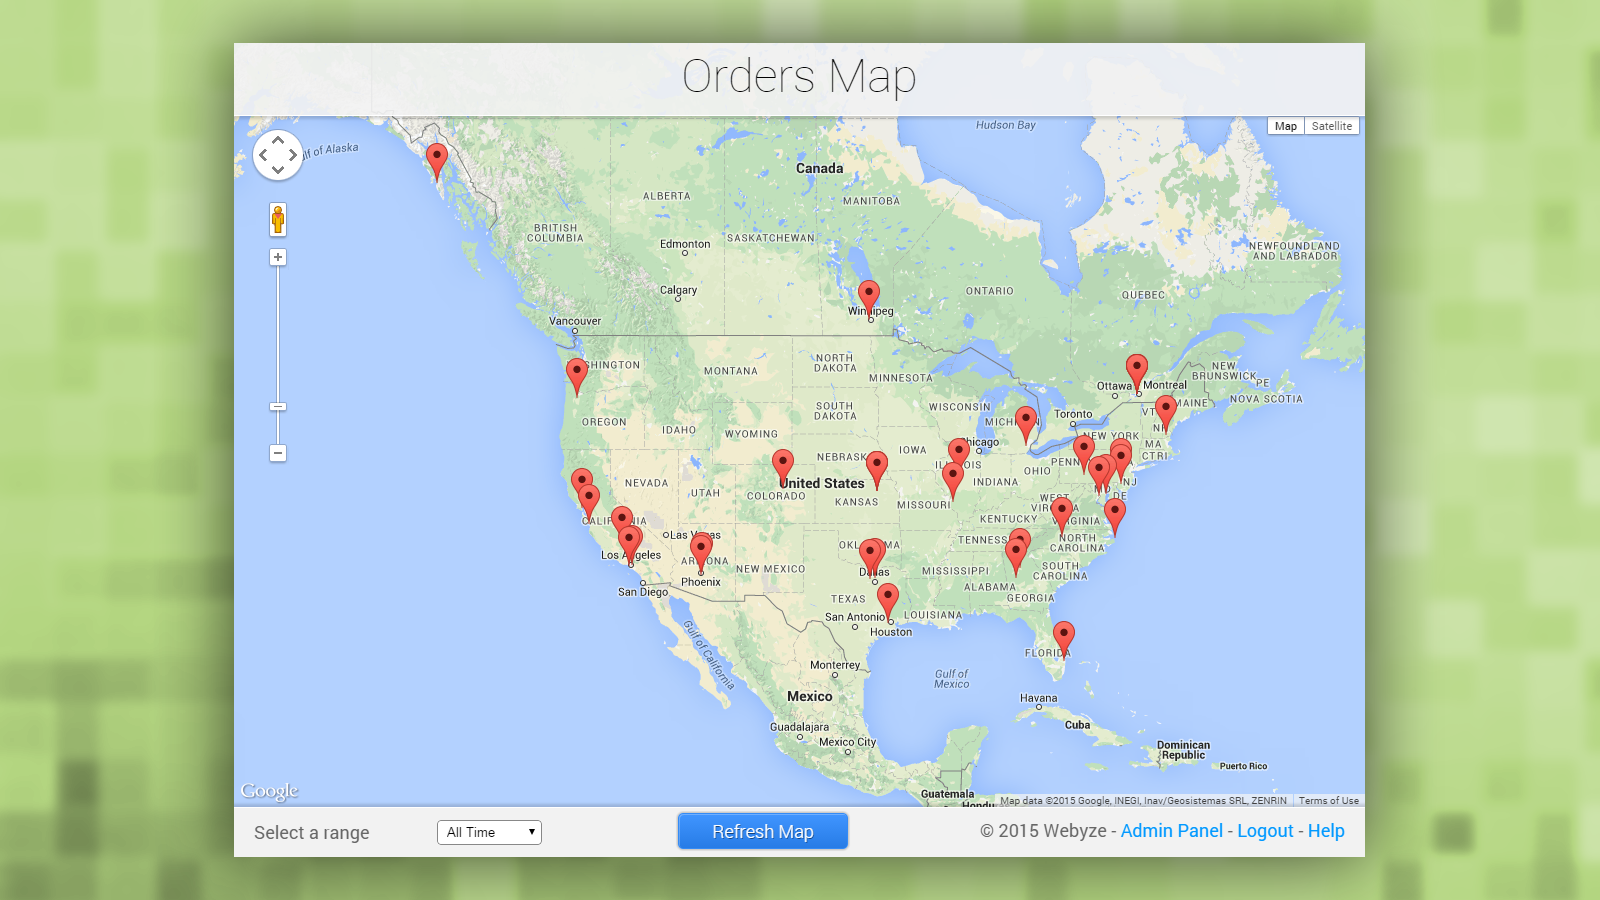 All orders on the map